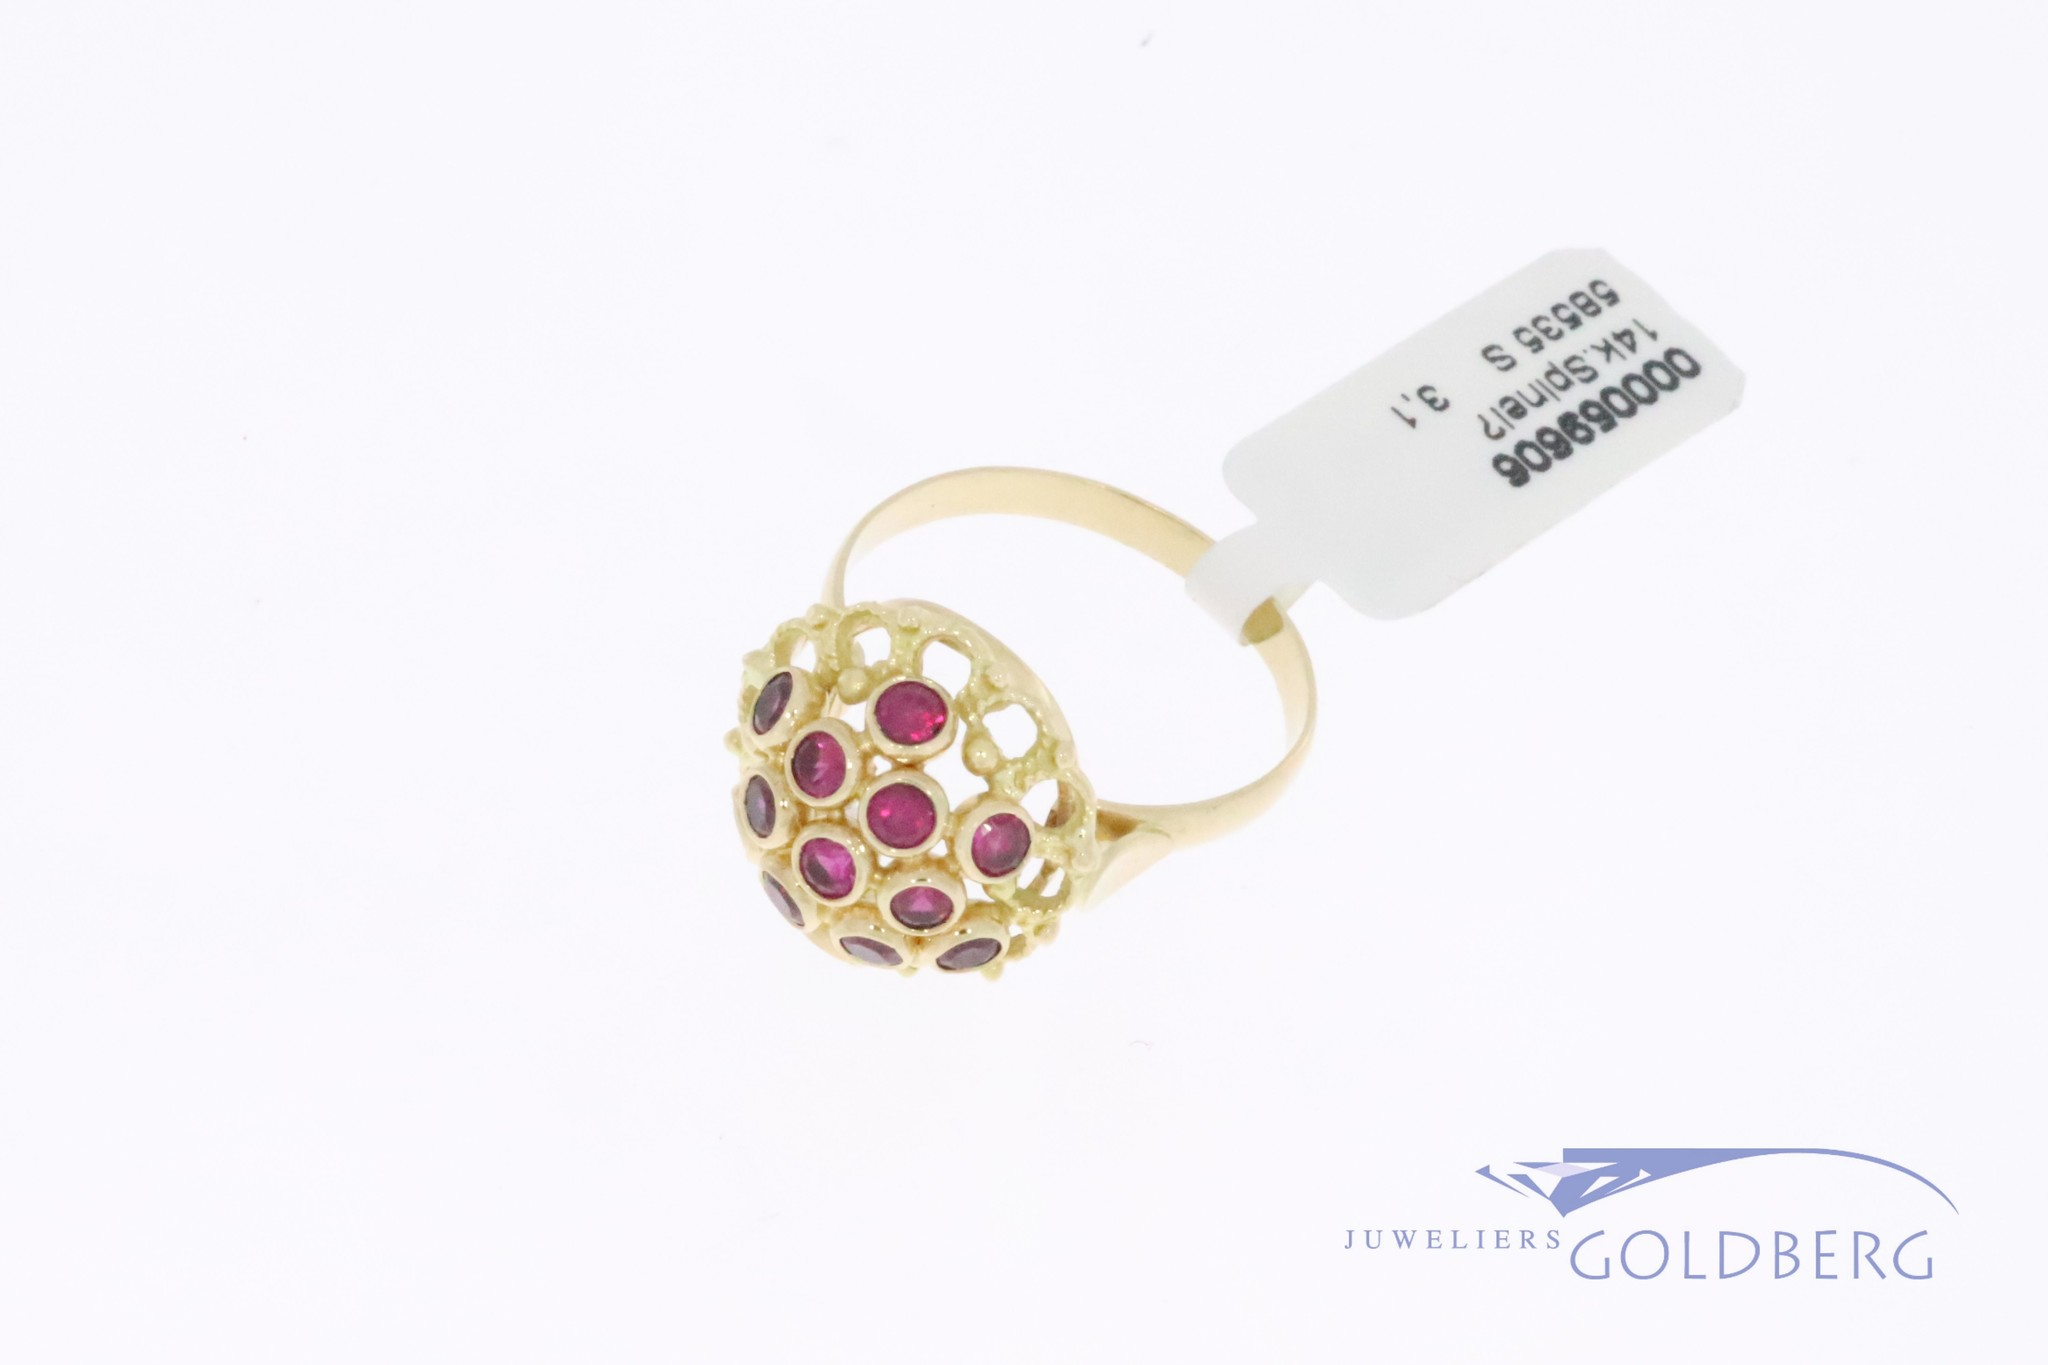 14k gold vintage fantasy rosette ring with synthetic rubies